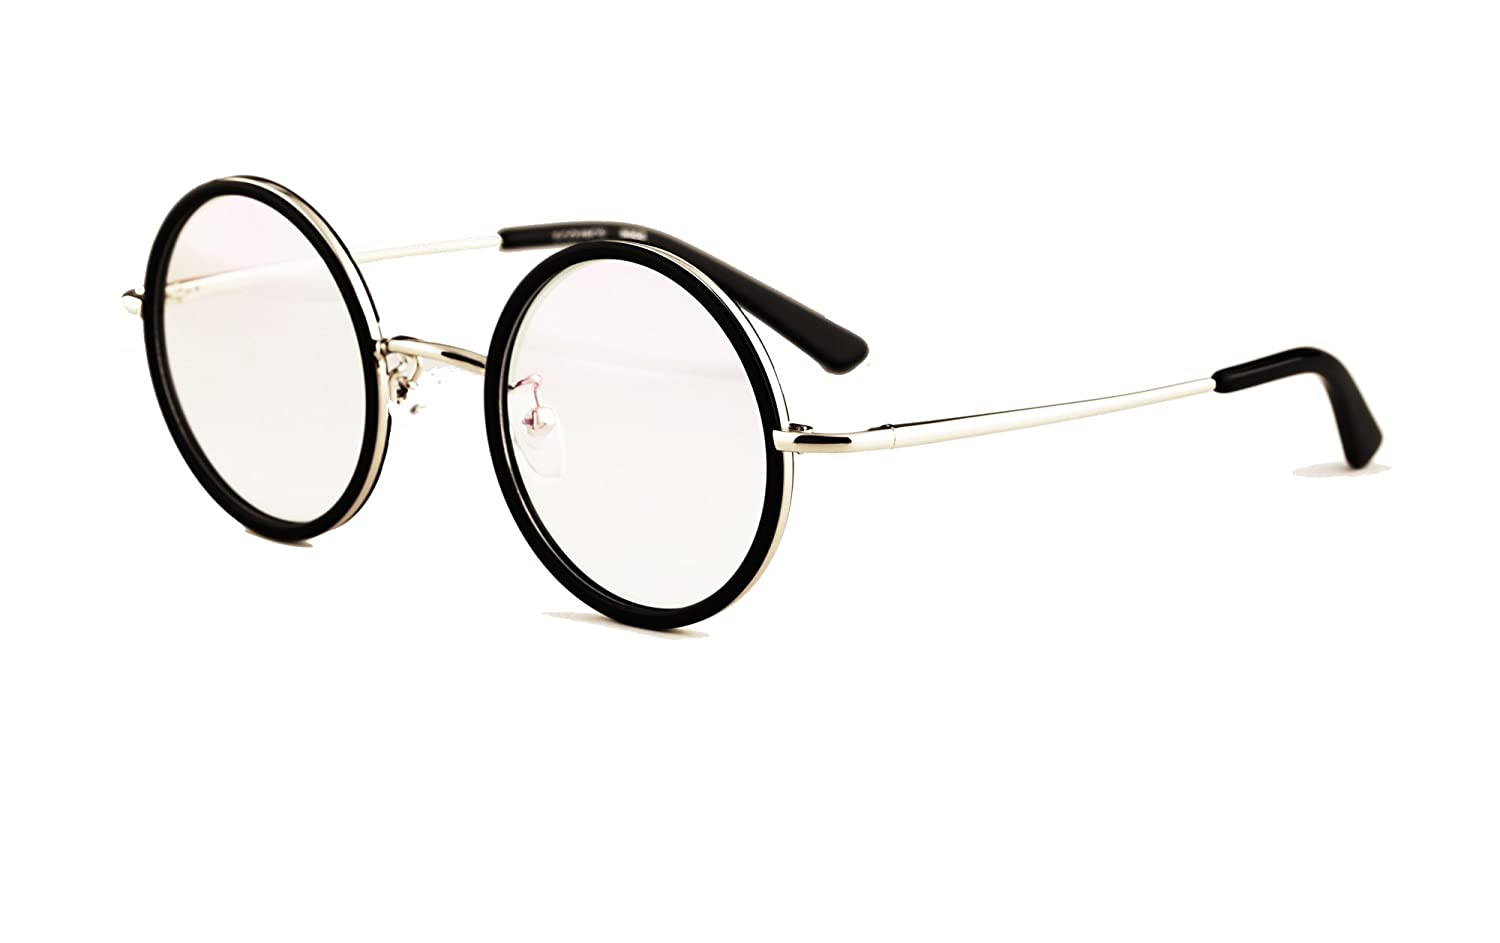 Agstum Small Round Optical Glasses Frame Spring Hinge Clear Lens 43mm 43) A-8029